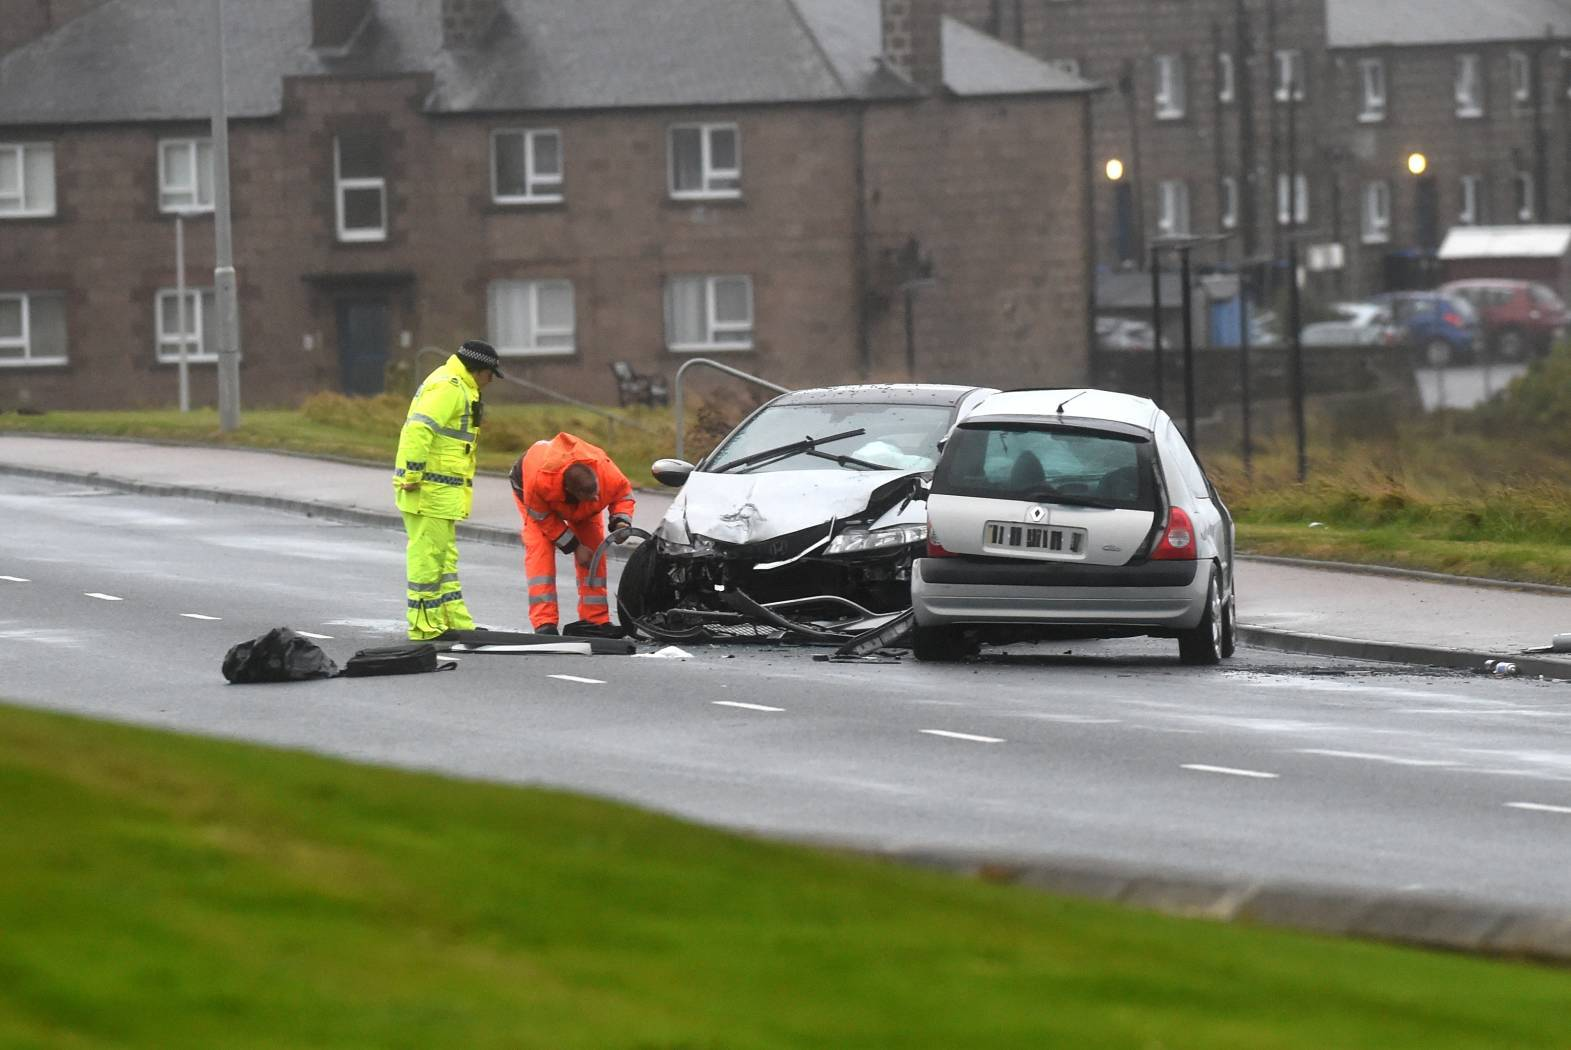 The crash happened on South Road in Peterhead.